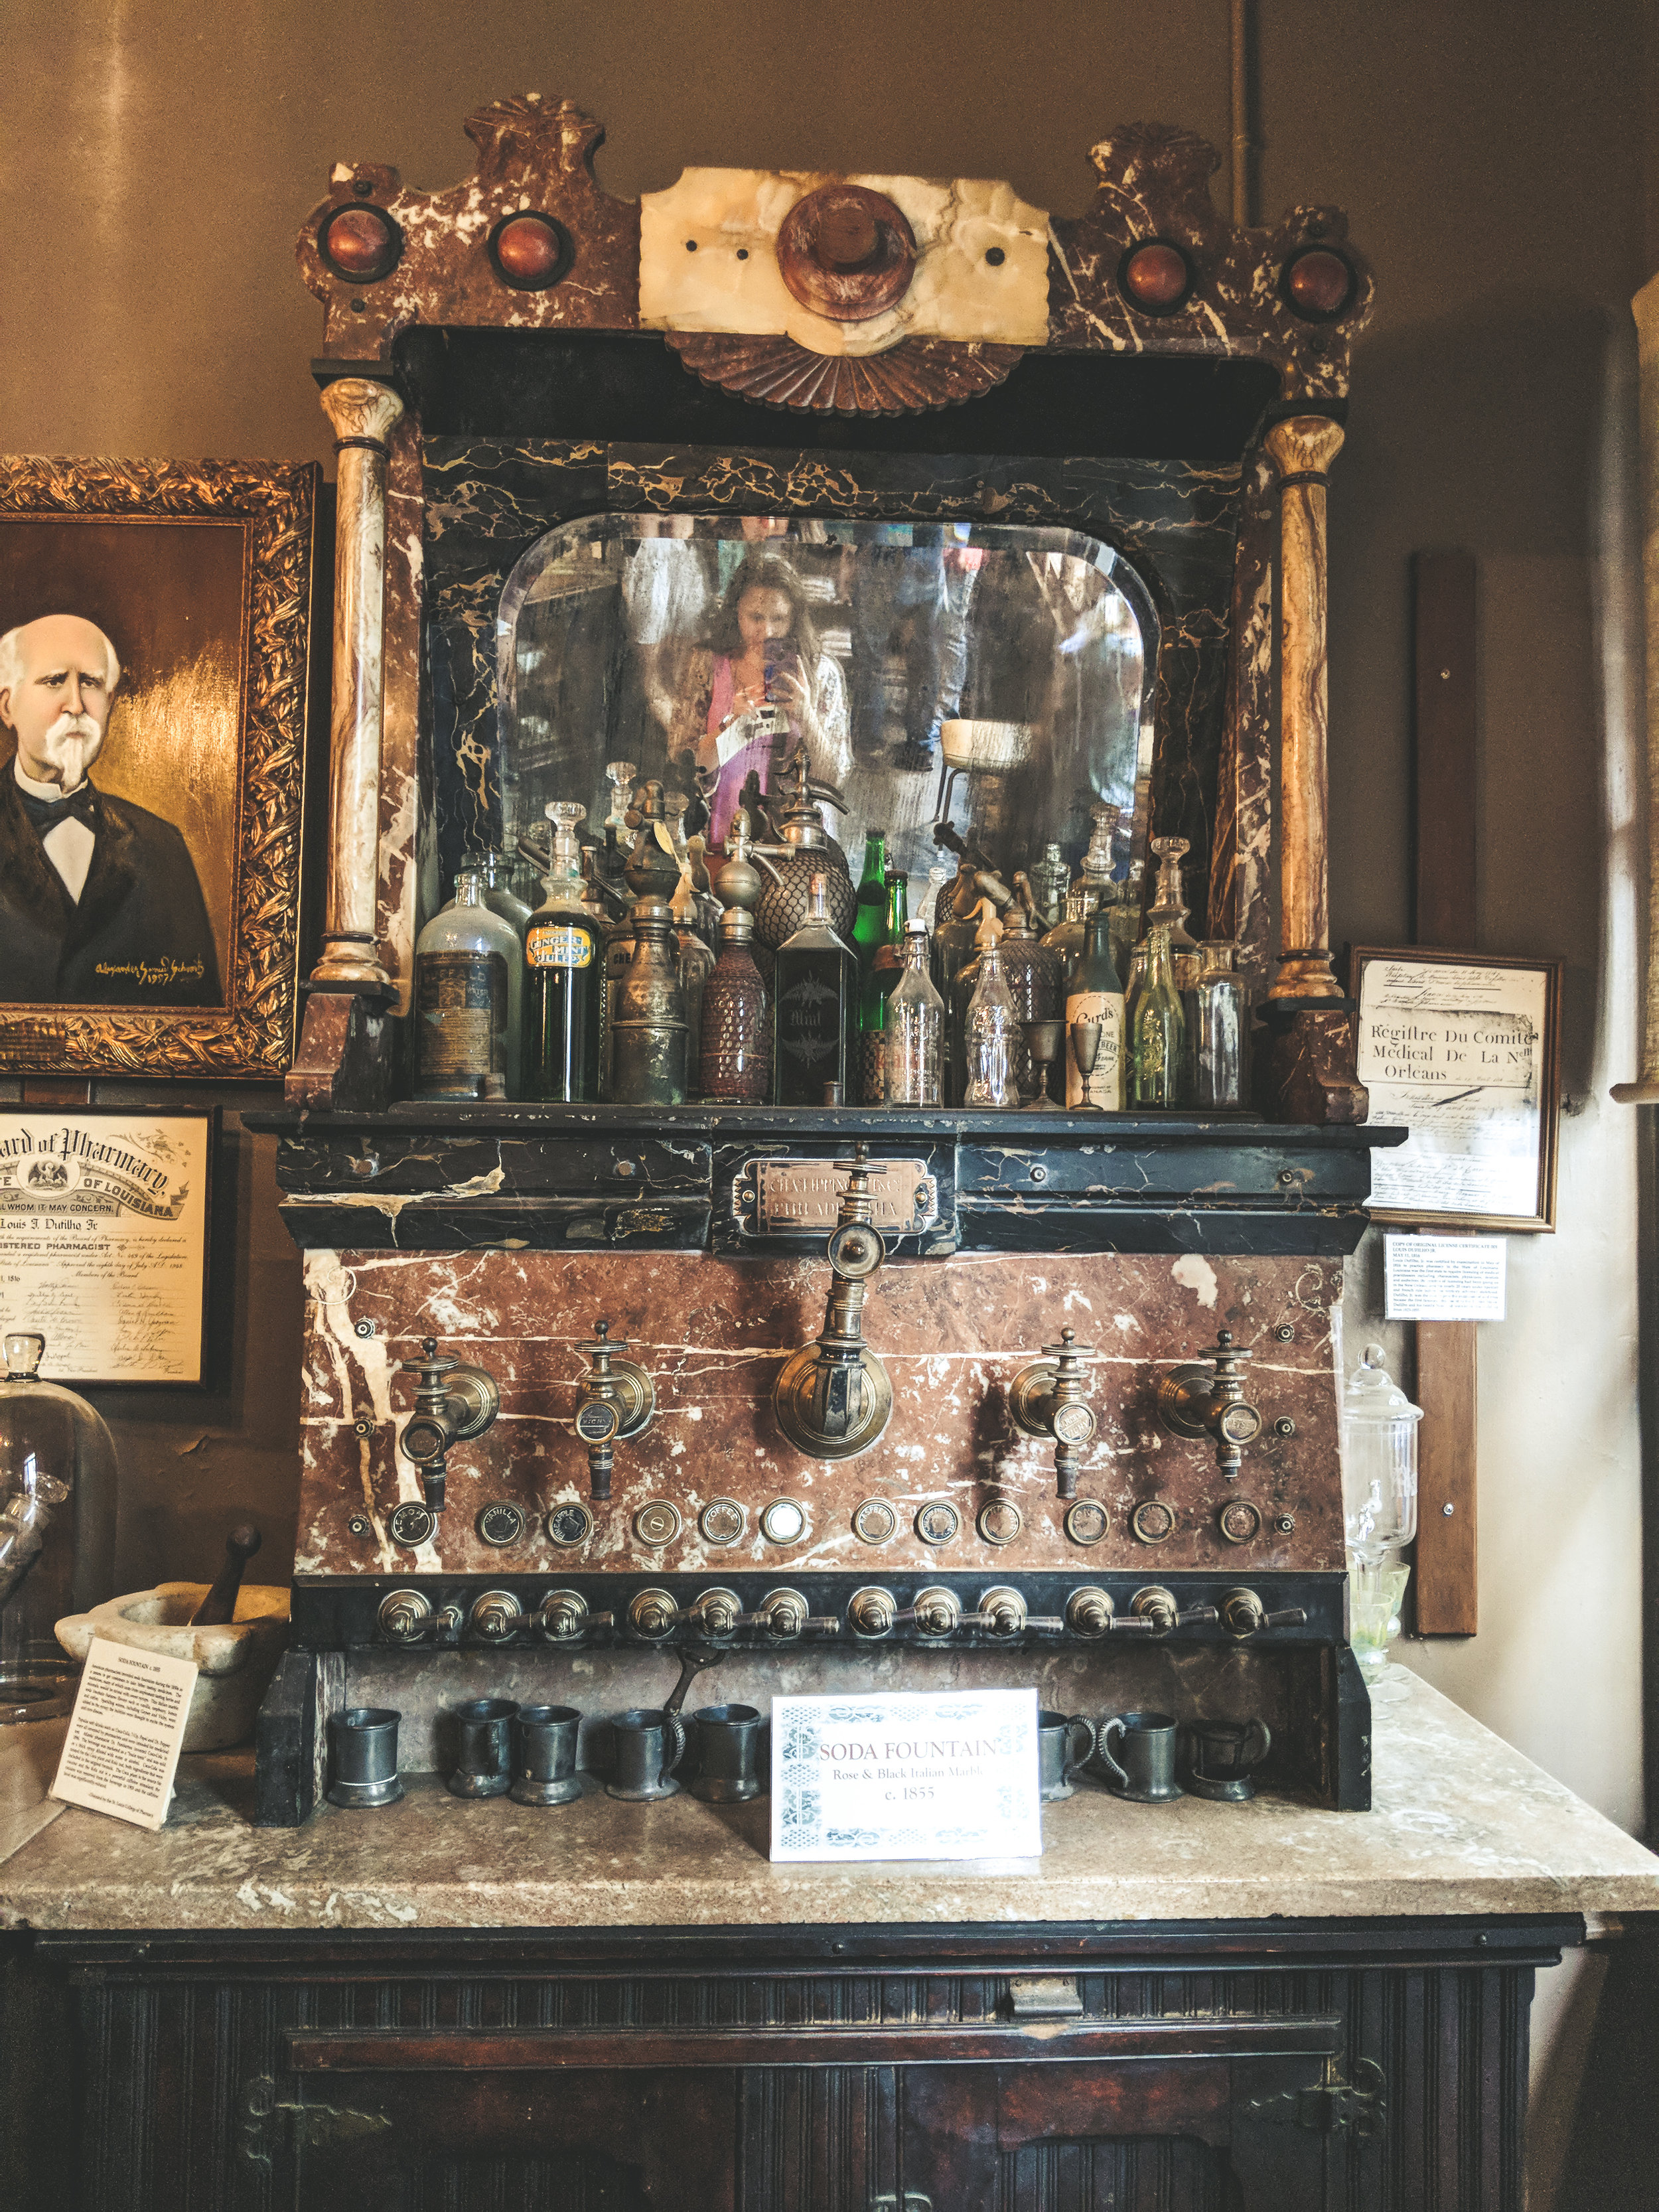 A glimpse inside the pharmacy museum.